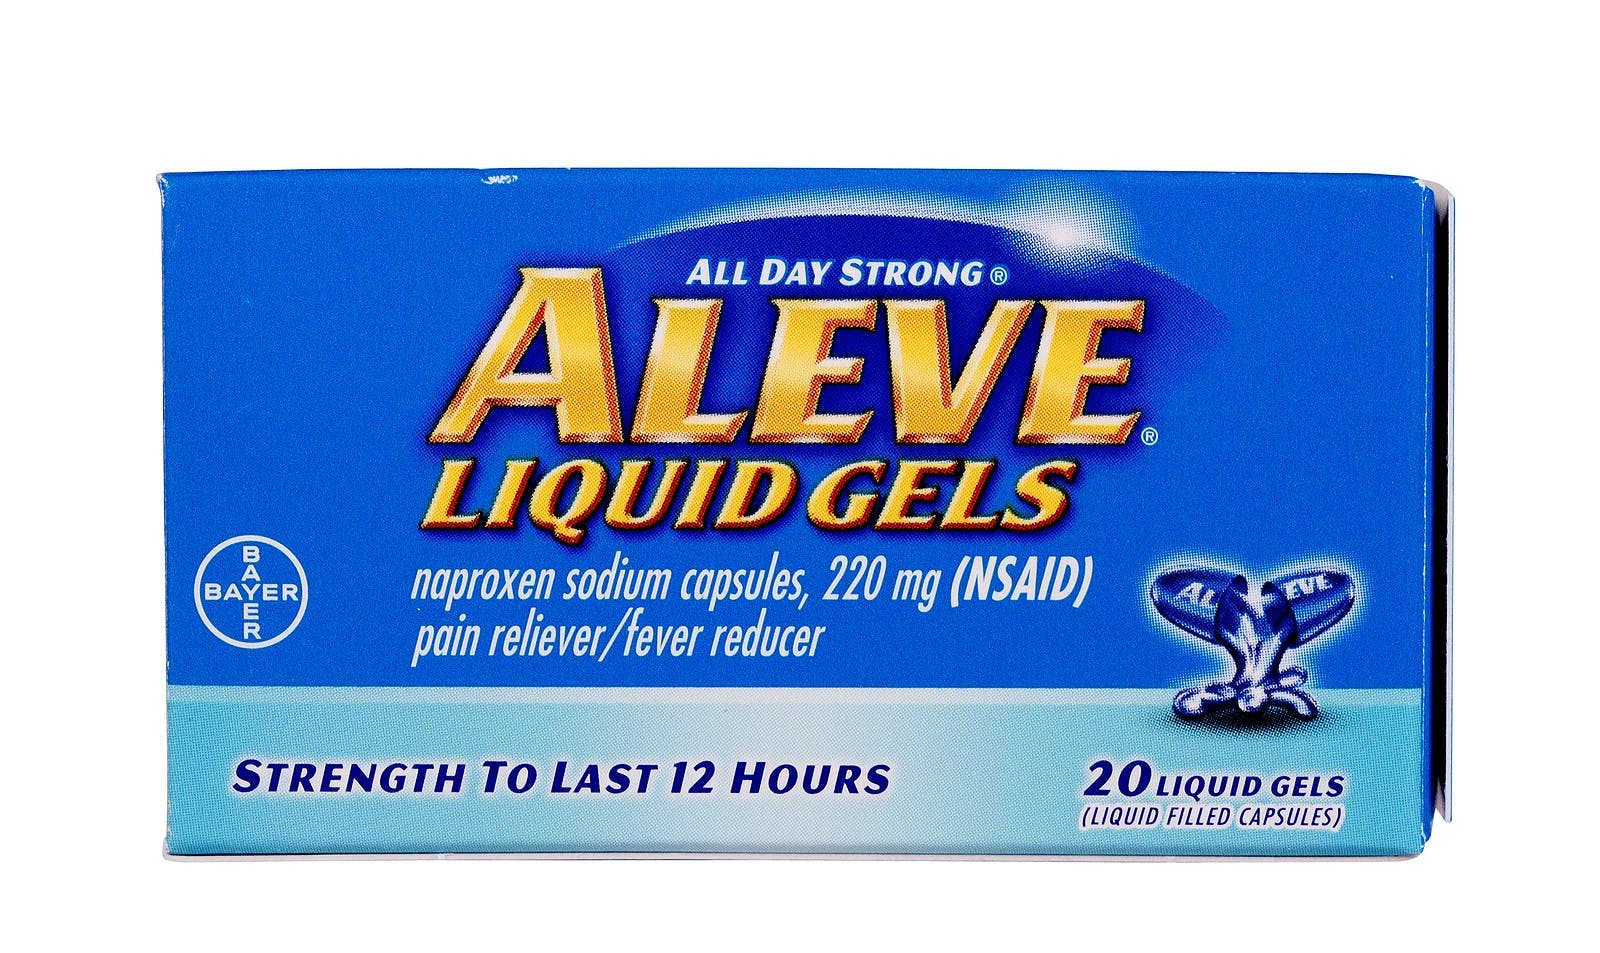 RIVER FALLS, WISCONSIN-OCTOBER 24, 2014: A box of Aleve Liquid Gels pain reliever. This is a product of Bayer Healthcare LLC.